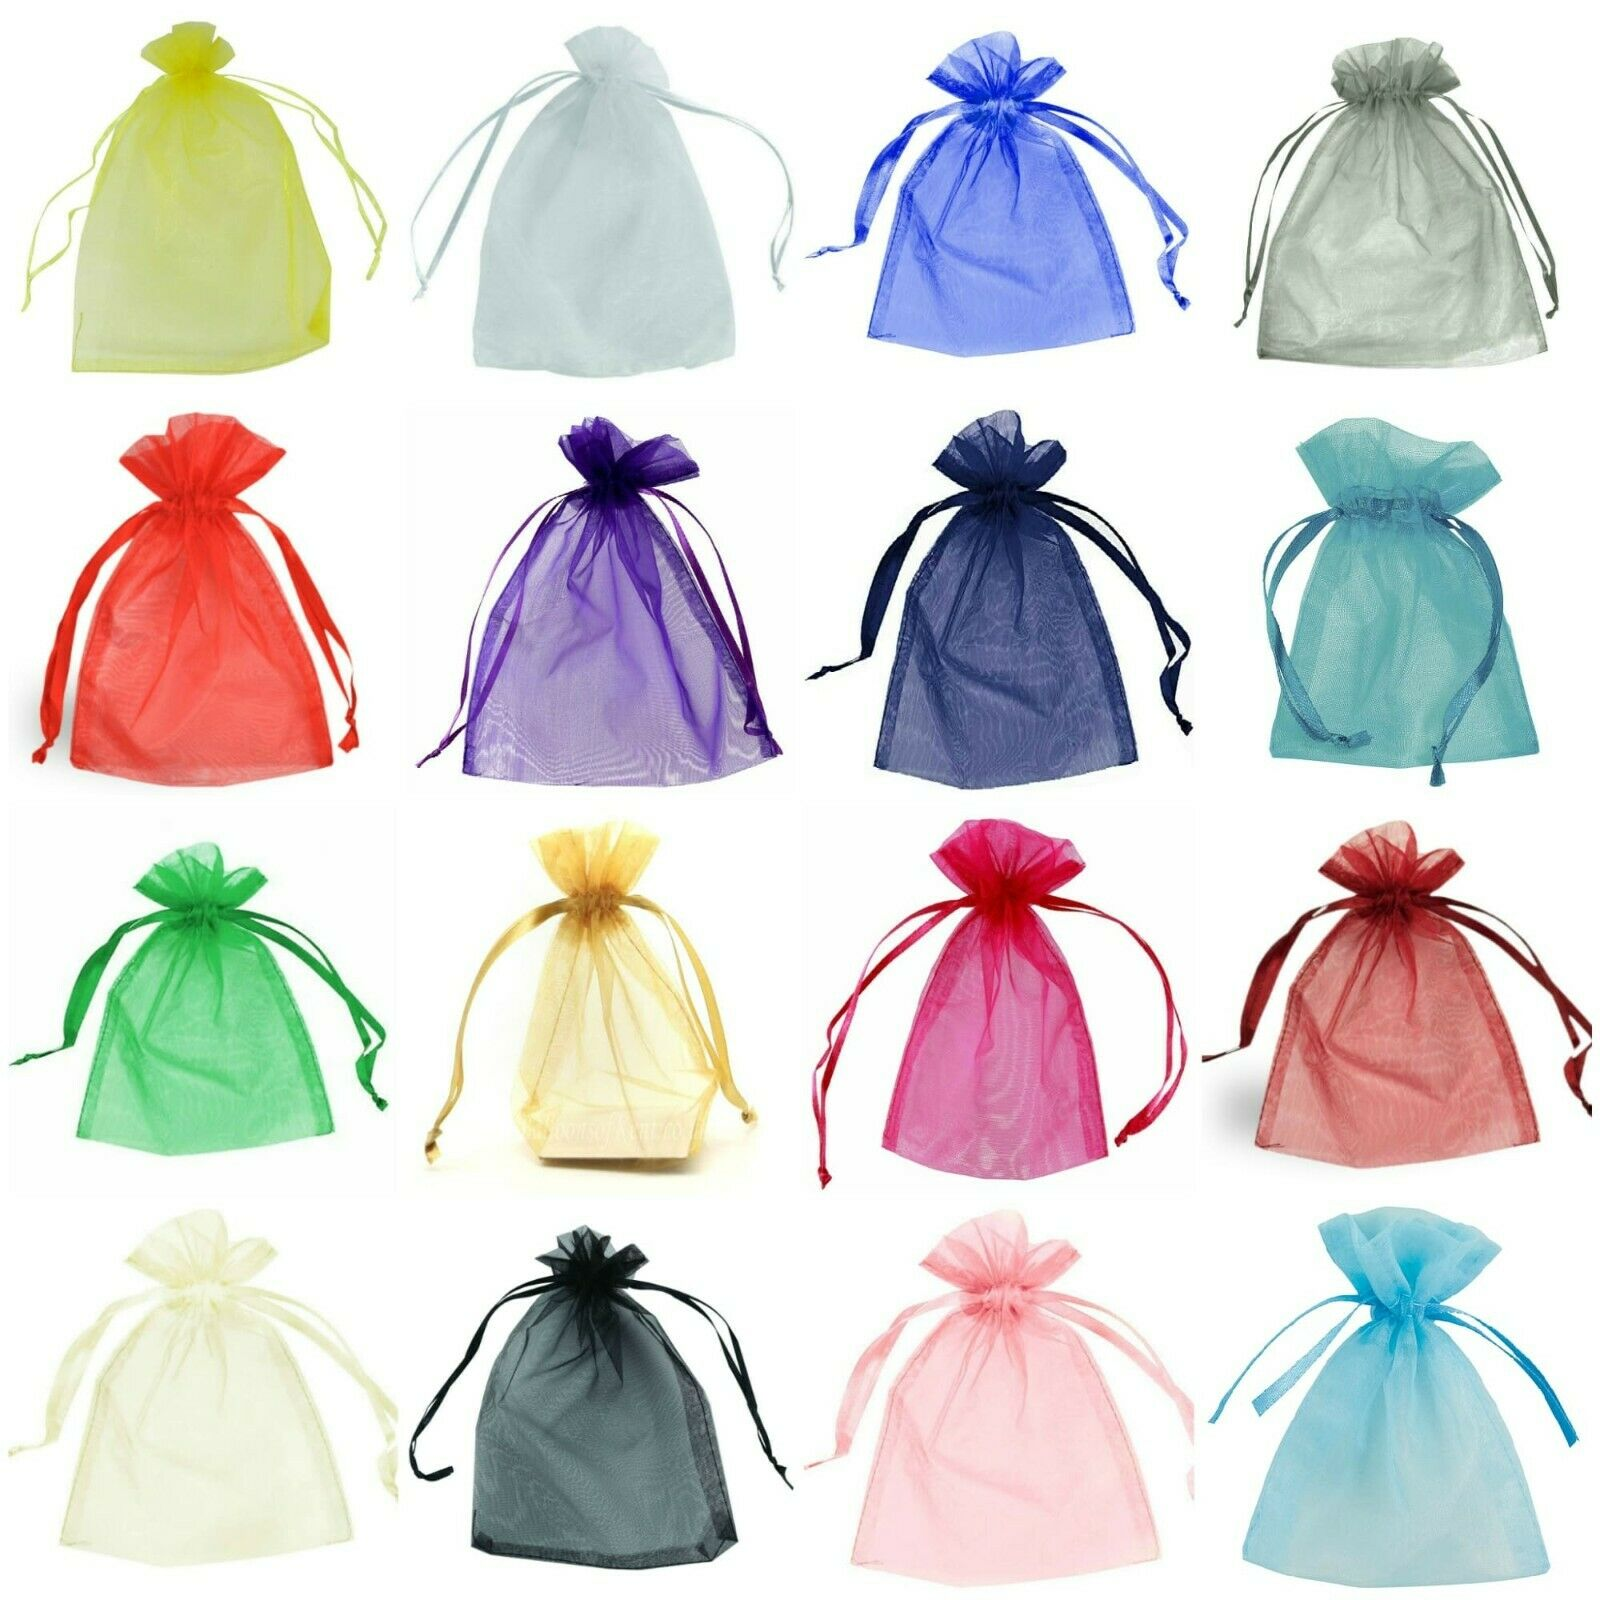 Jewellery - 25-100 ORGANZA BAGS. Jewellery, Wedding Favour, Birthday Party, Gift Bag Pouches